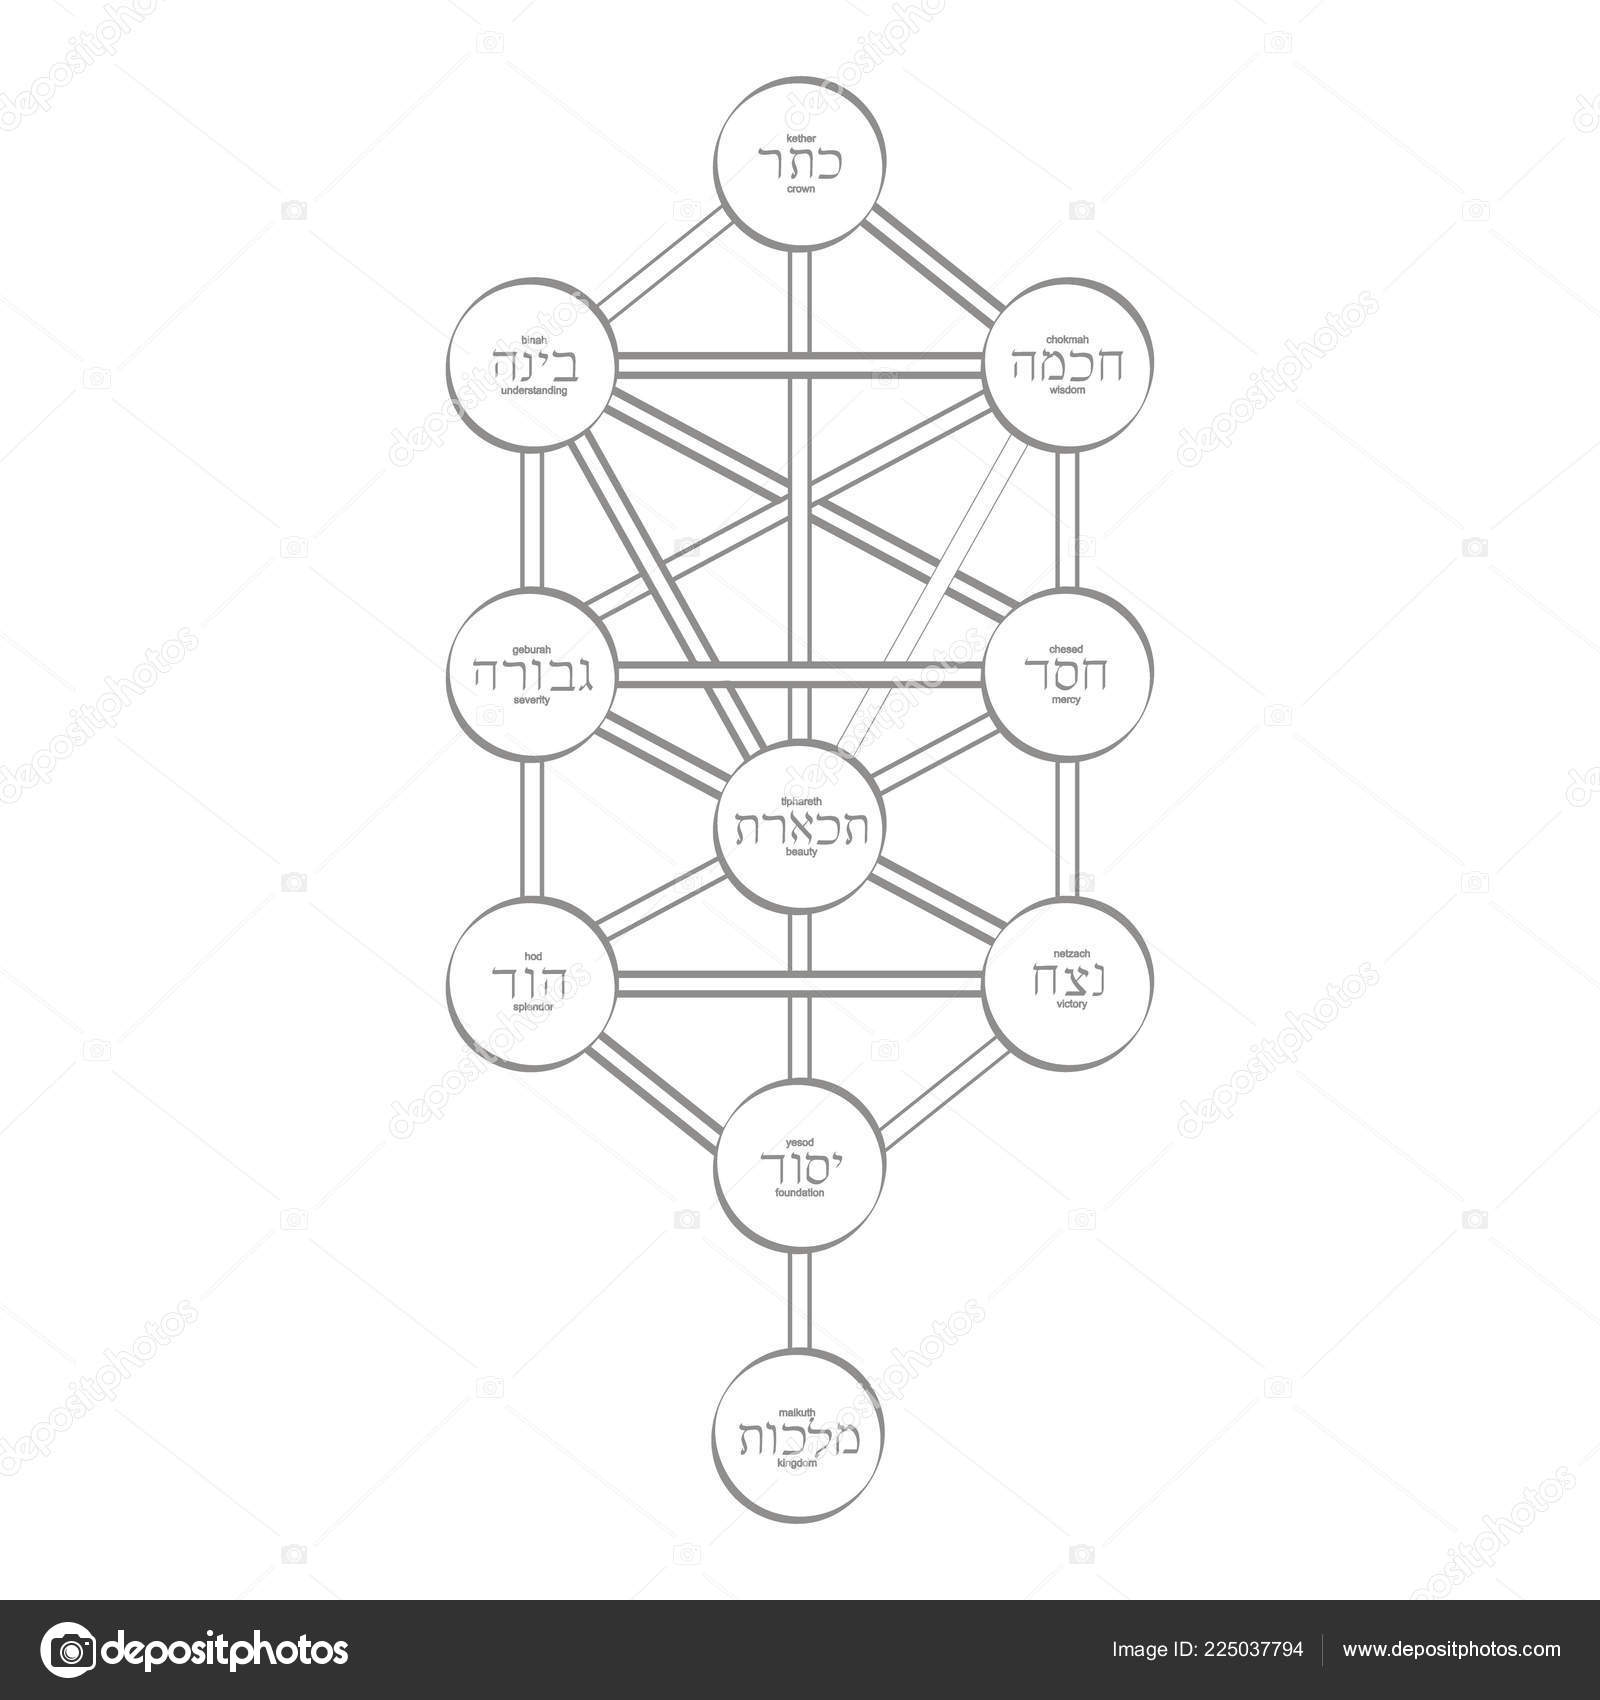 Áˆ Tree Of Life Diagram Kabbalah Stock Pictures Royalty Free Kabbalah Images Download On Depositphotos The structure is closely related to the kabbalah, the jewish mysticism. https depositphotos com 225037794 stock illustration vector icon tree life kabbalah html